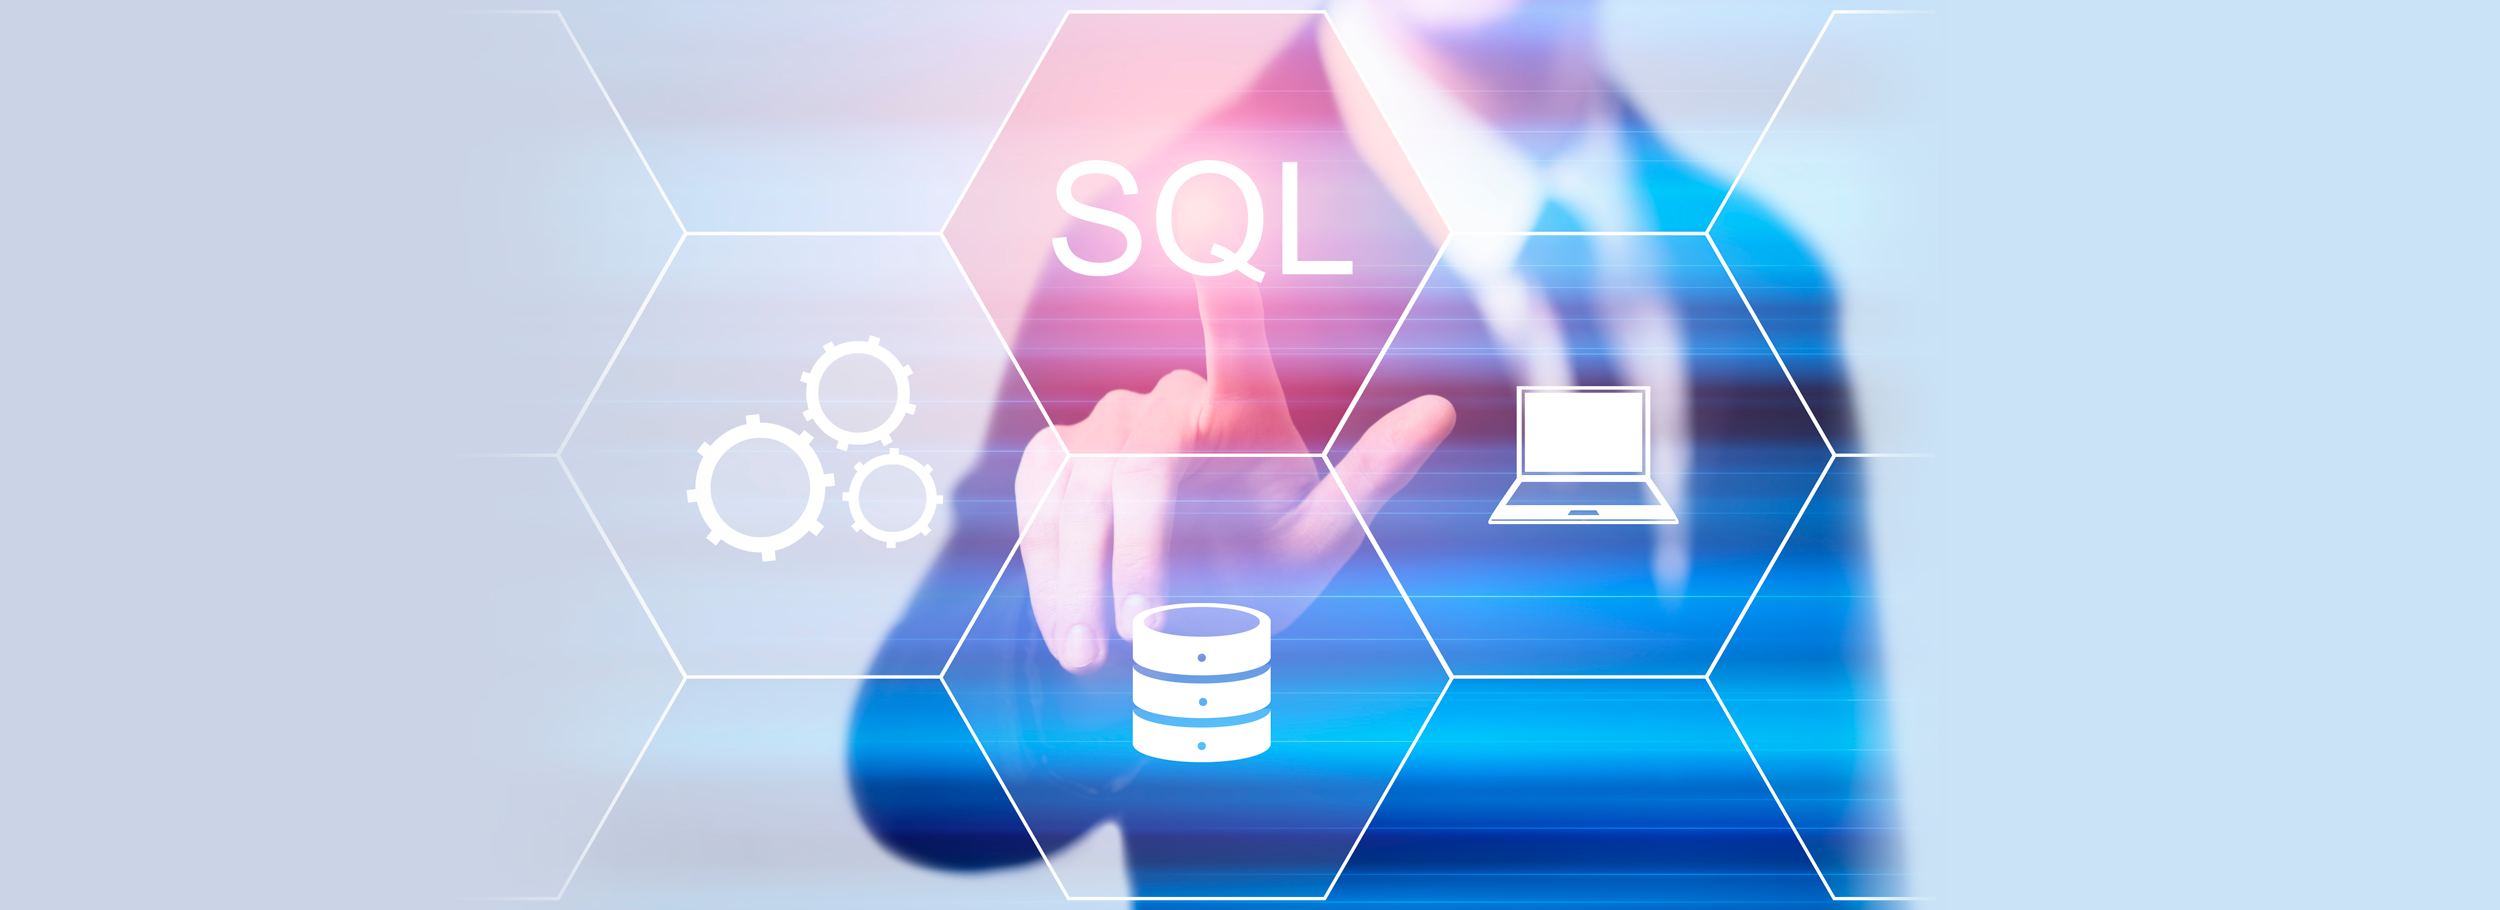 Microsoft SQL Server performance monitoring and capacity planning